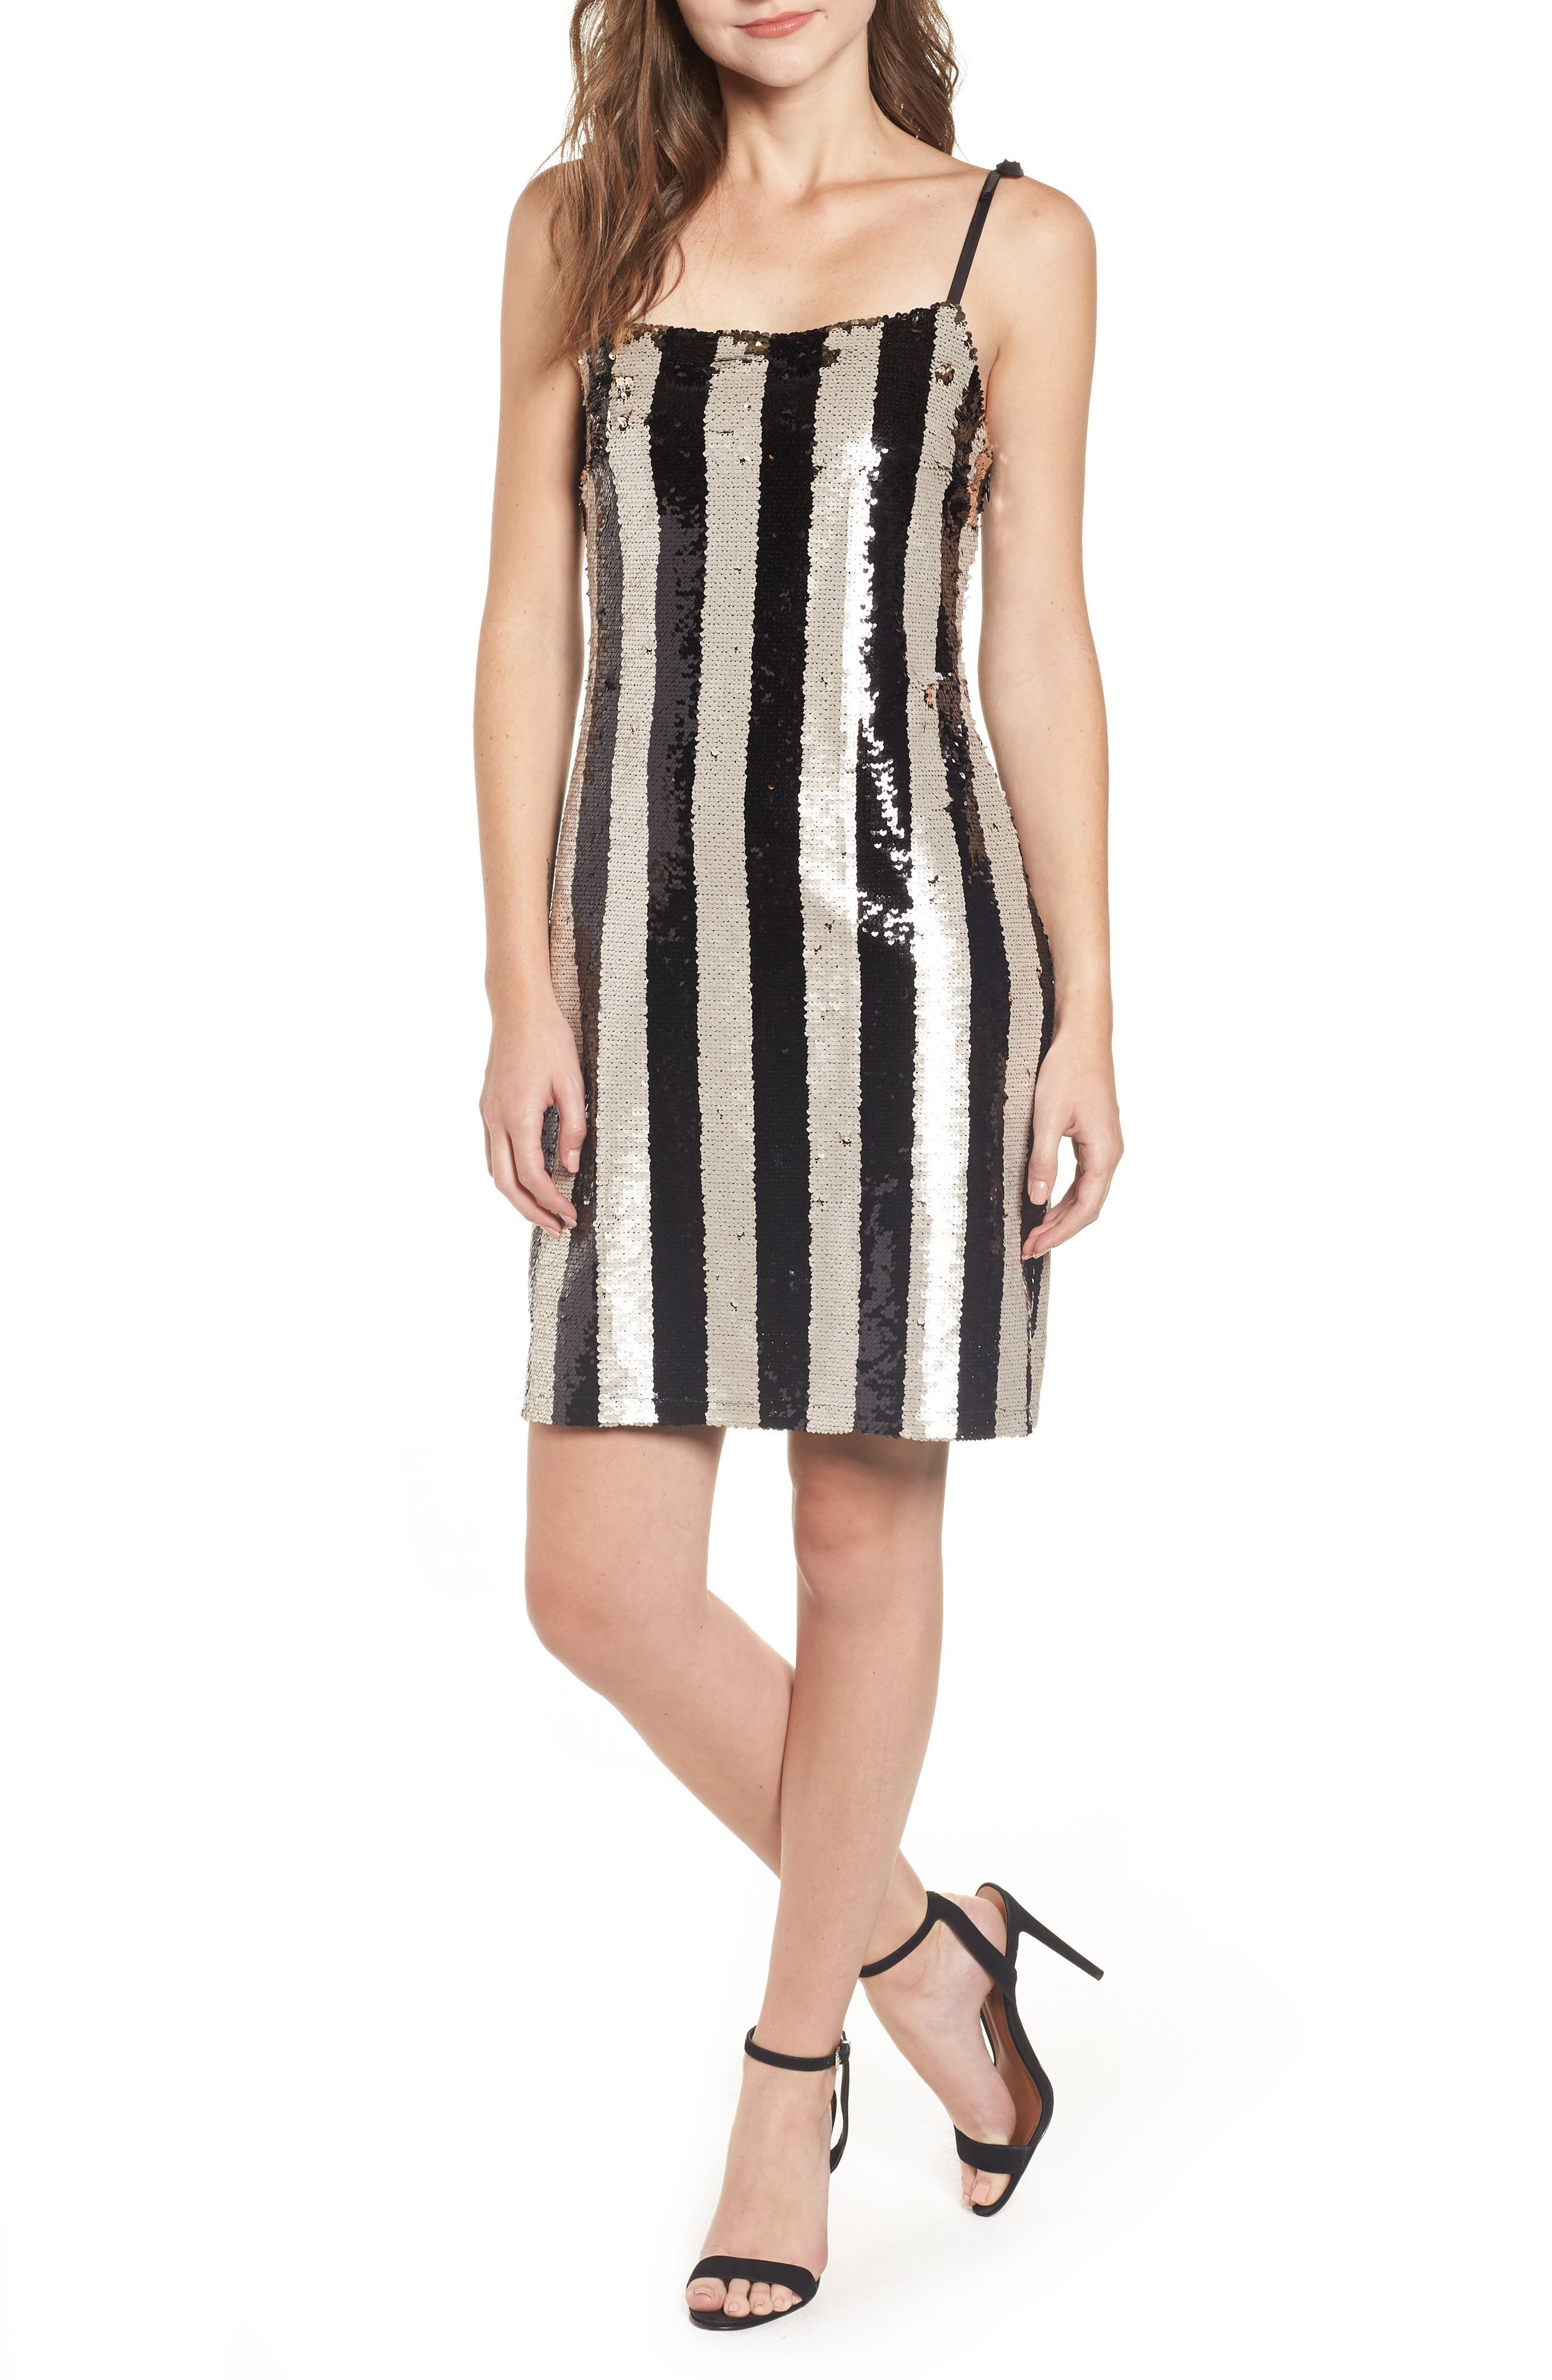 CUPCAKES AND CASHMERE Vertical Sequin Stripe Dress, Main, color, BLACK